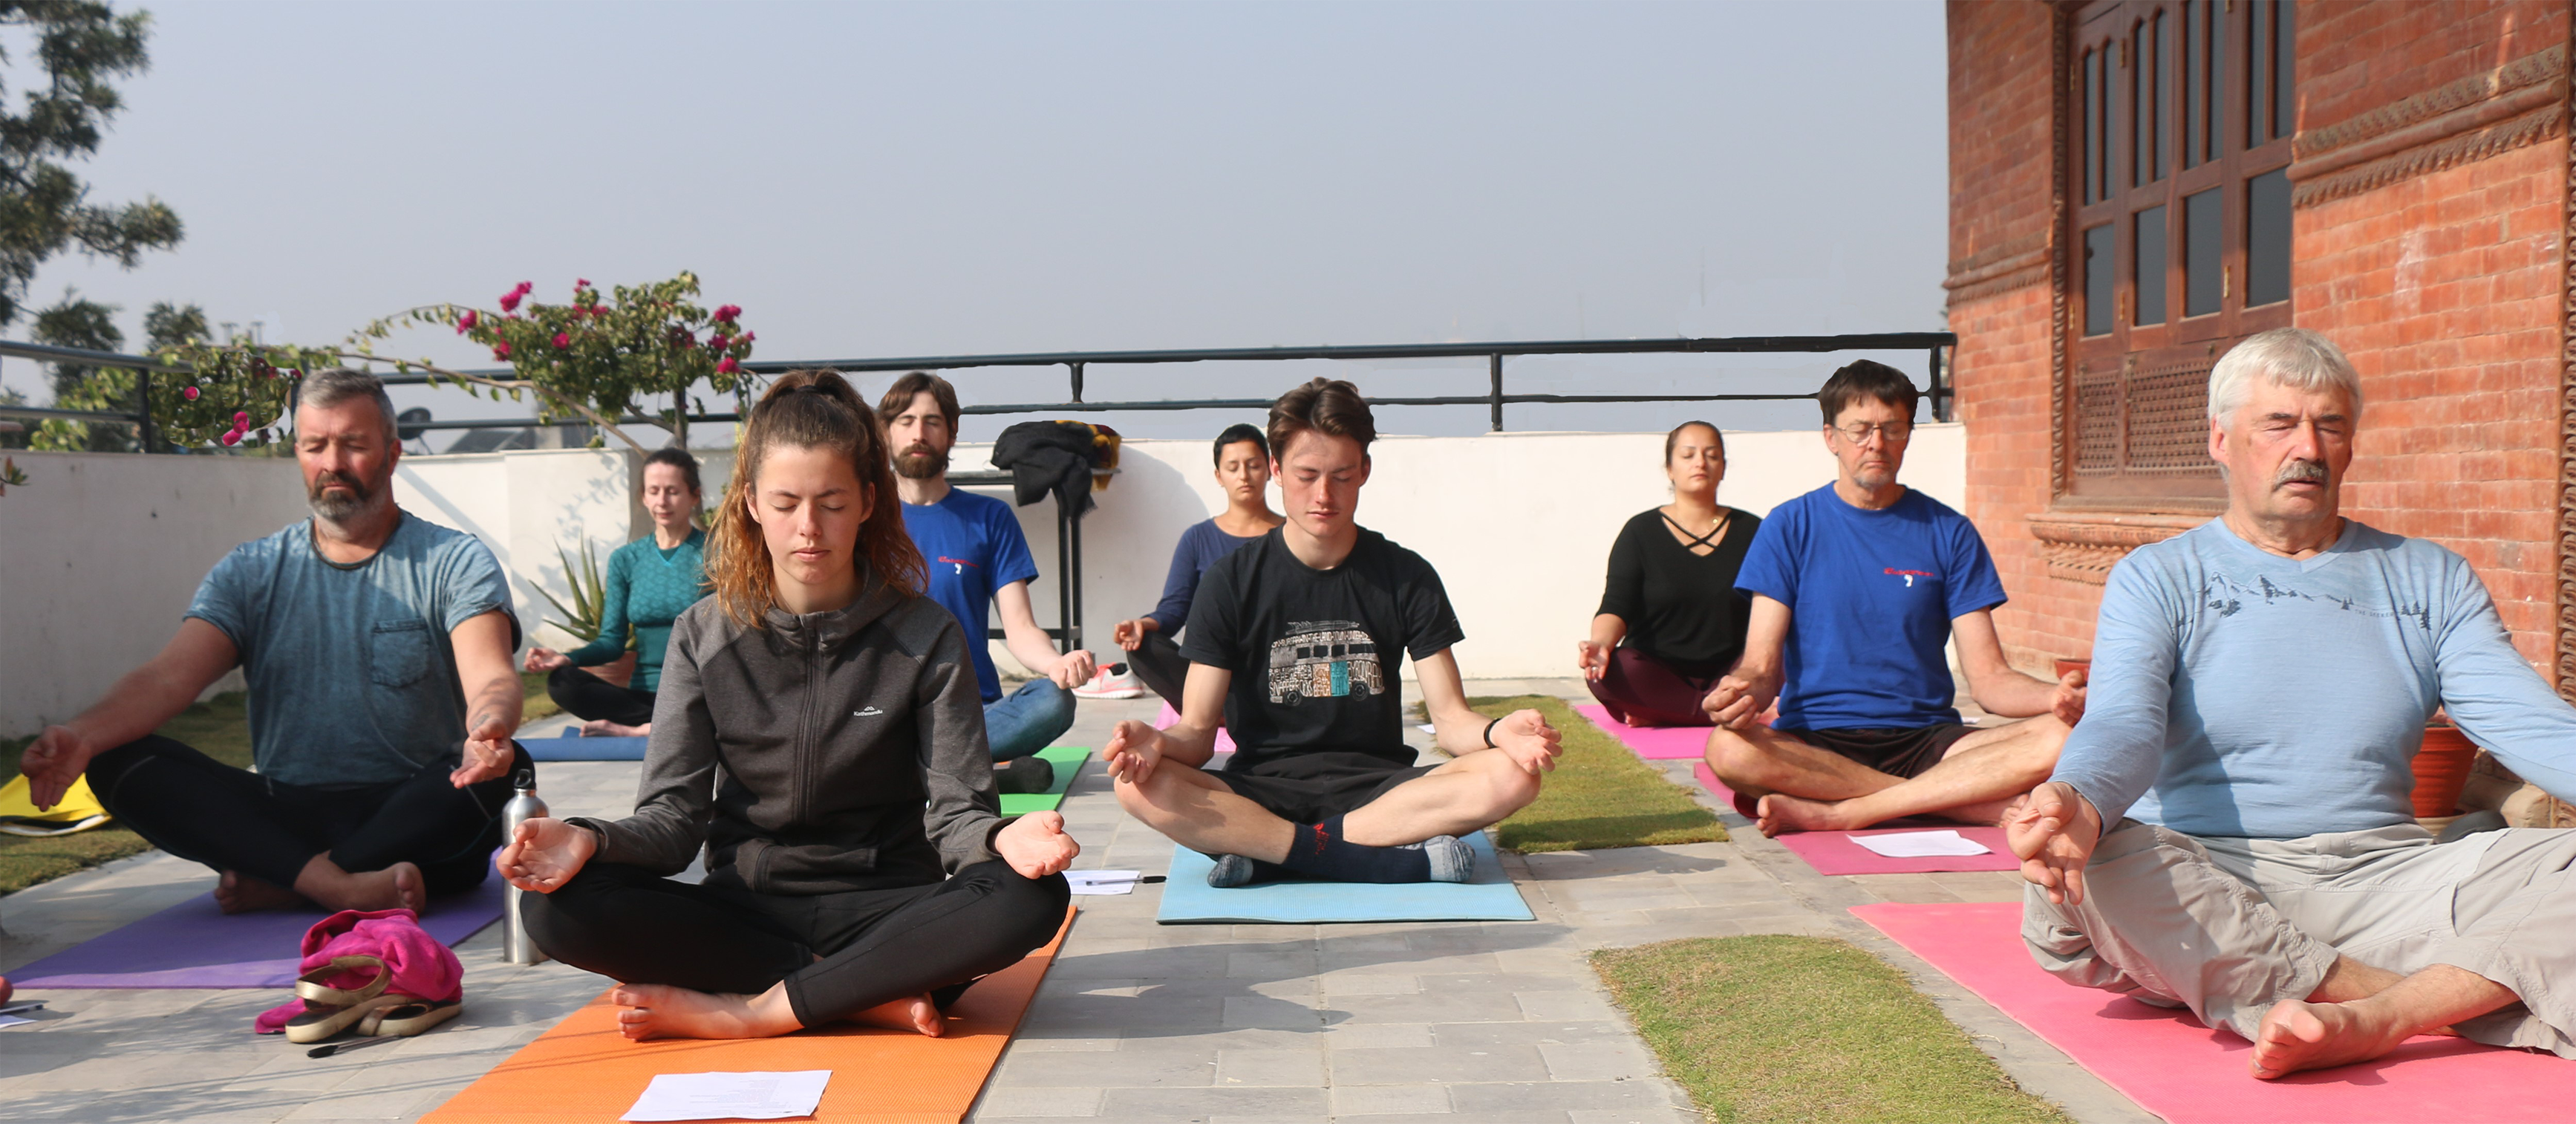 Yoga In Nepal | Yoga Teacher Training in Nepal